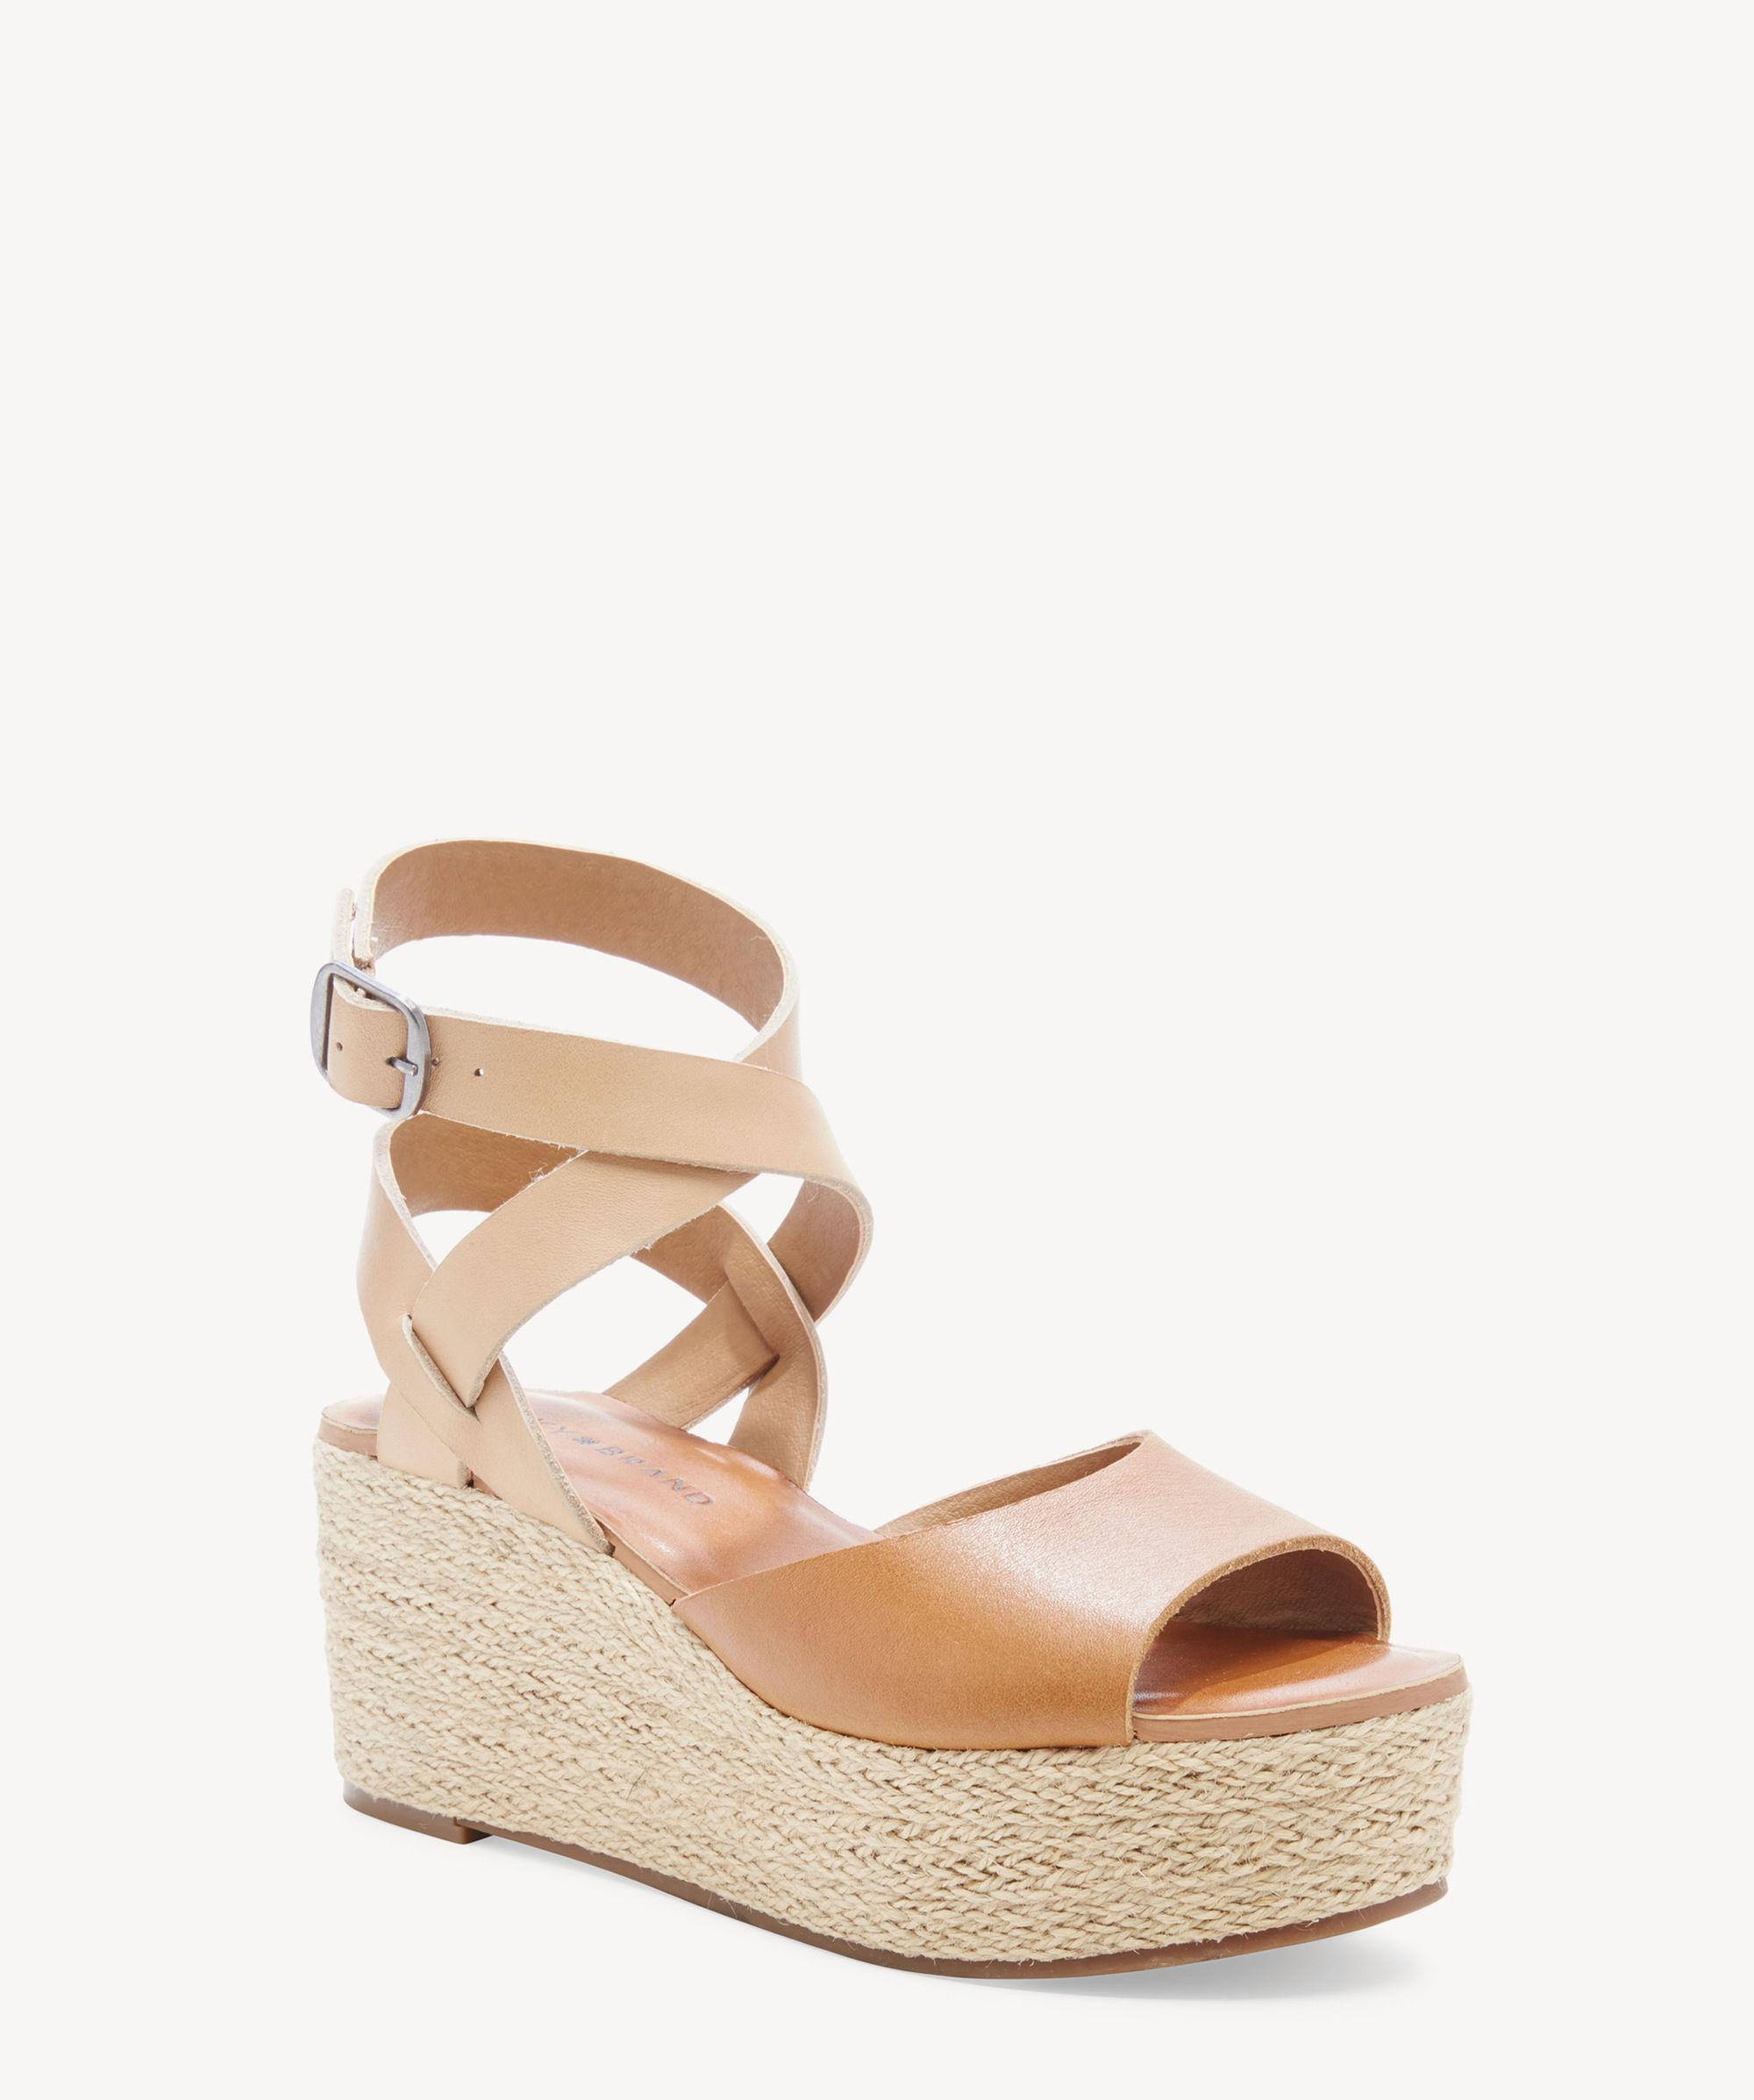 690bb9a2b Lucky Brand - Natural Ginny Espadrille Platform Wedge - Lyst. View  fullscreen